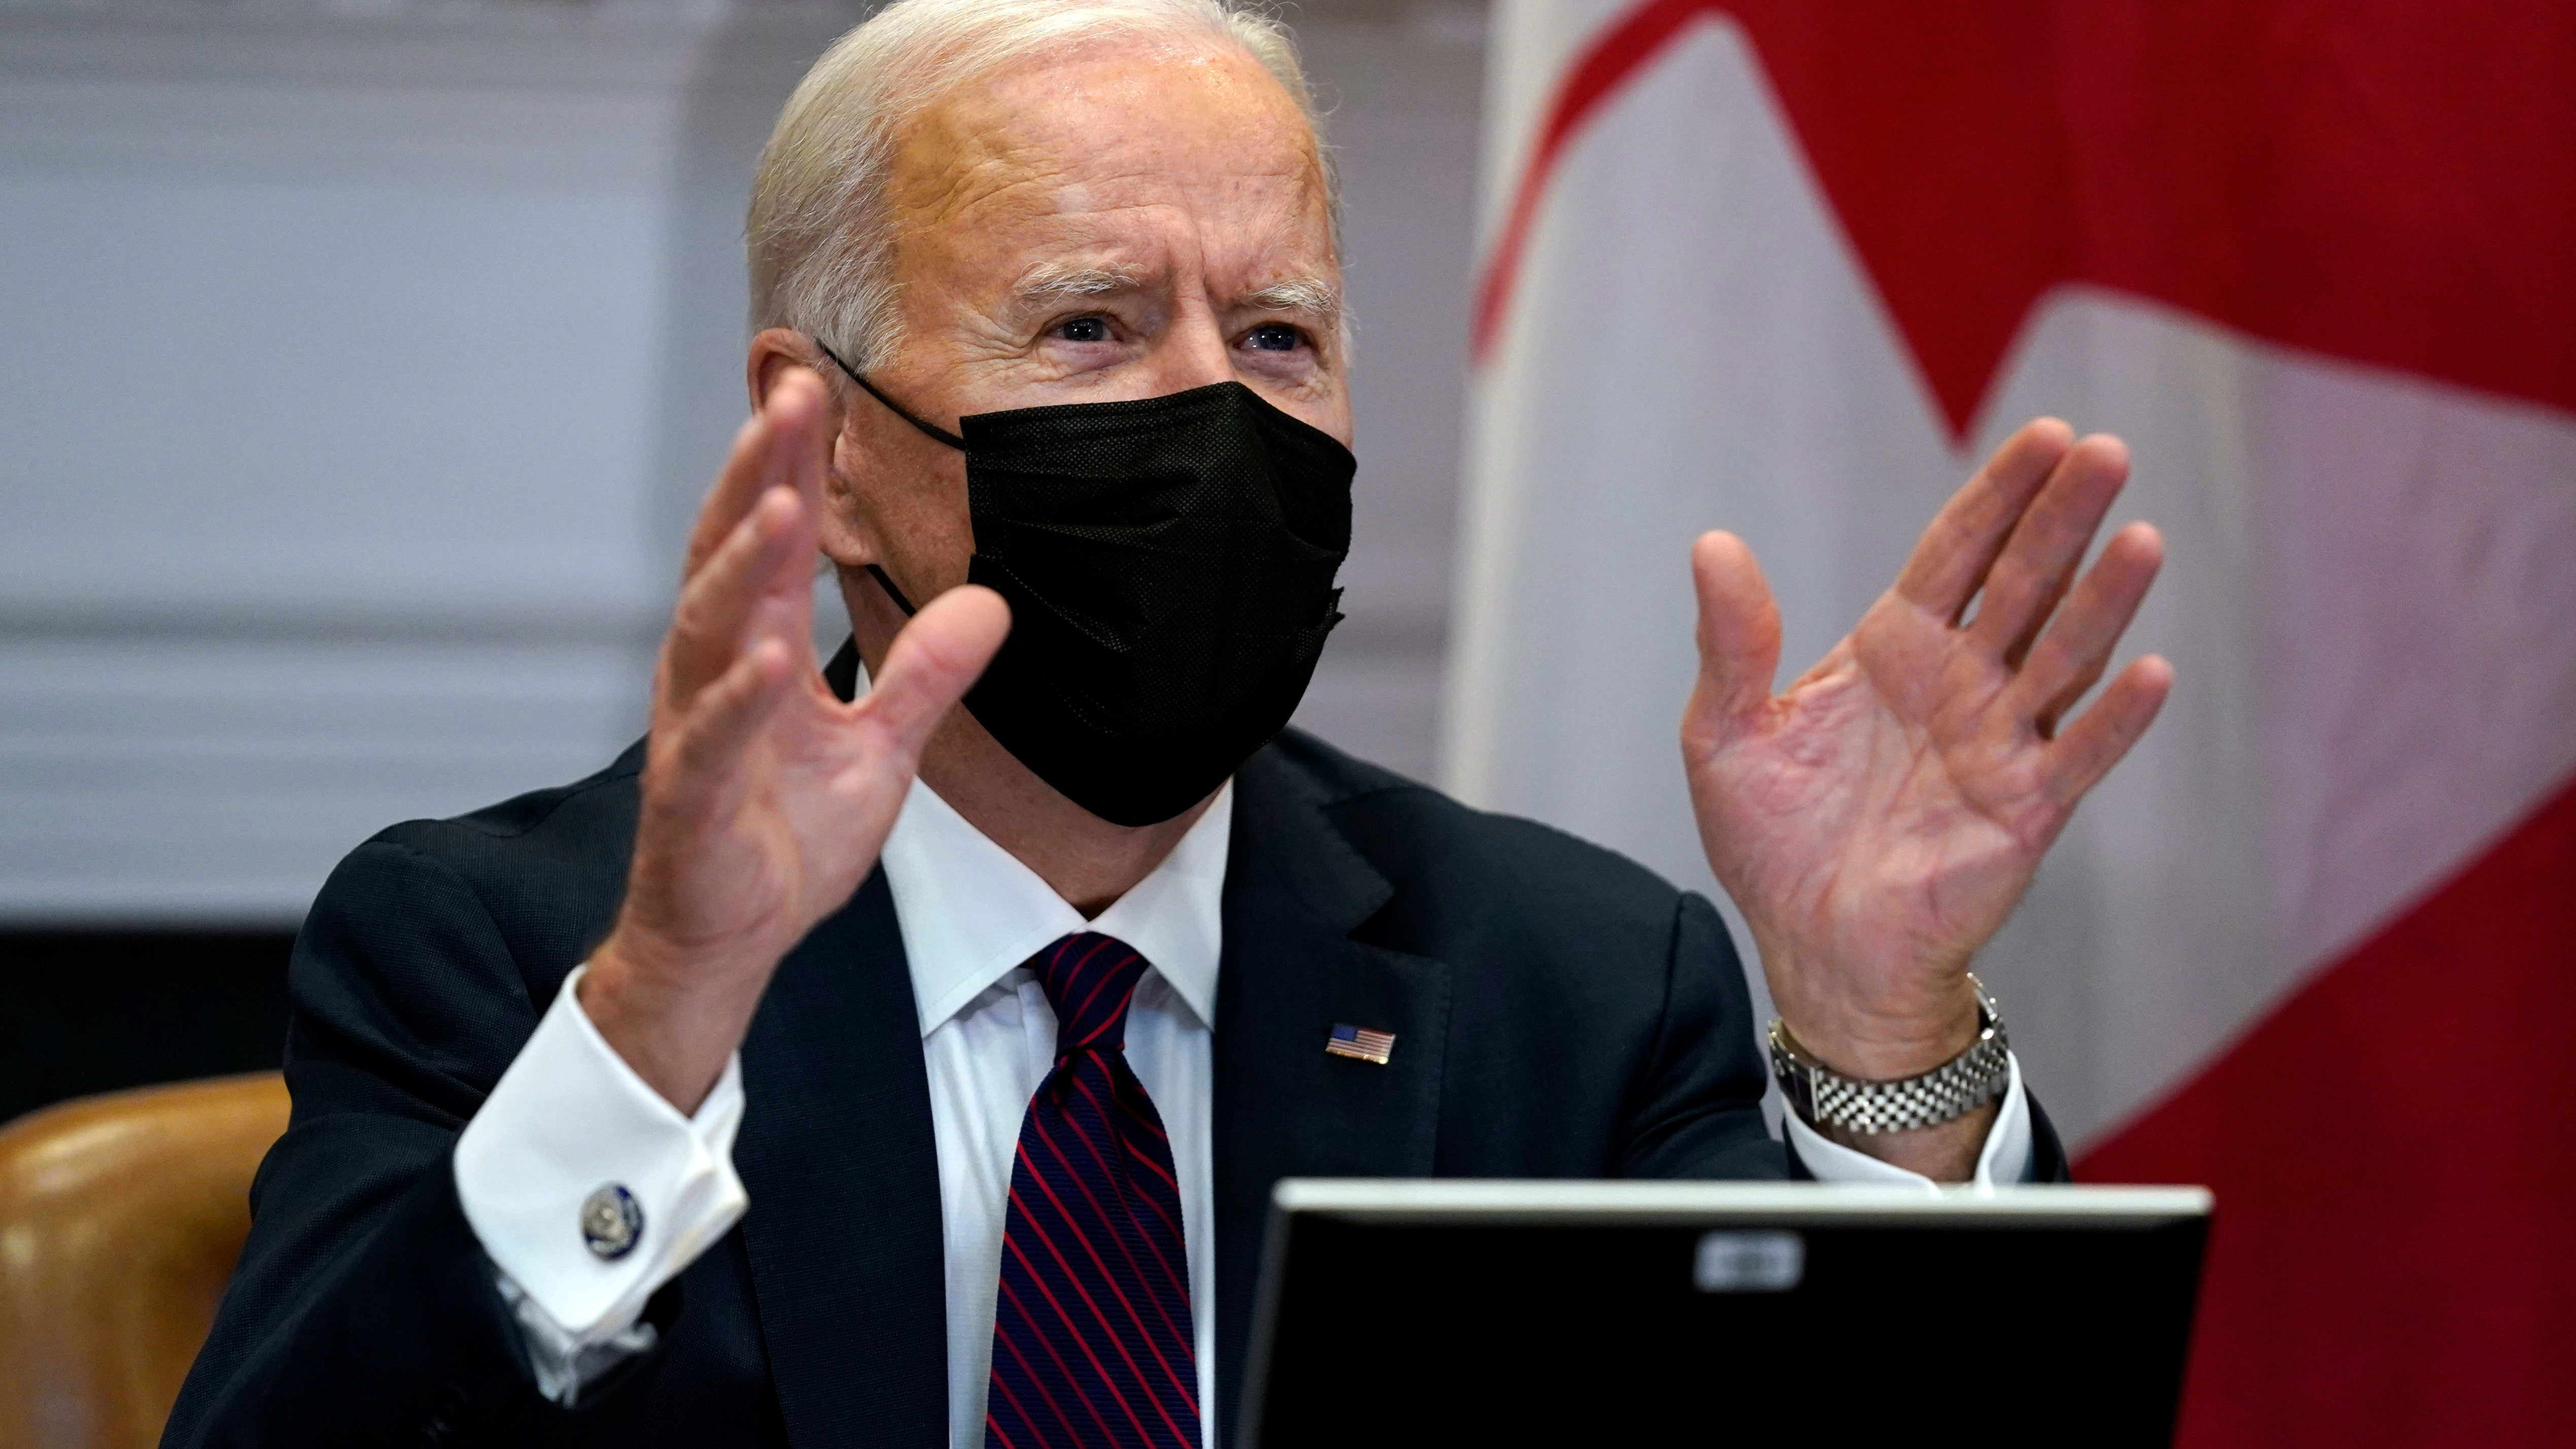 Biden COVID relief package not a 'free lunch,' Harvard economist says